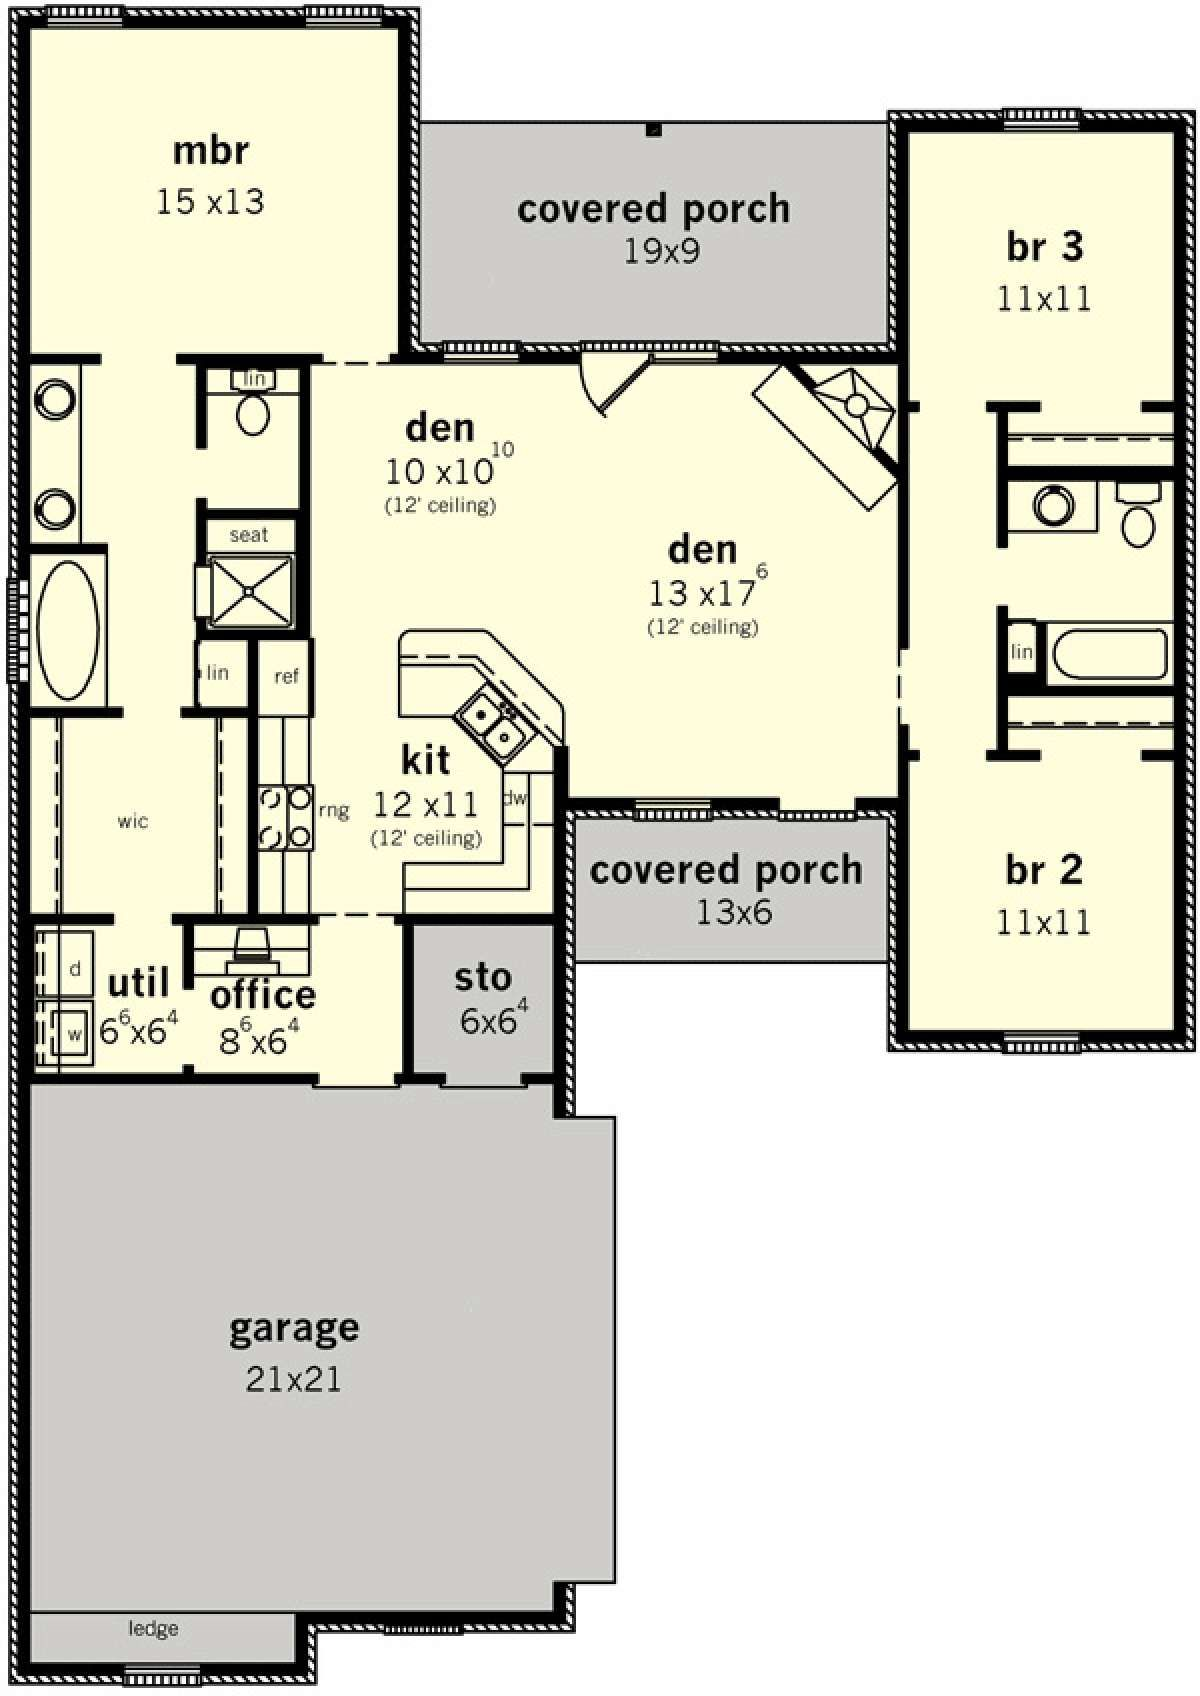 House Plan 9035 00242 Ranch Plan 1 442 Square Feet 3 Bedrooms 2 Bathrooms Small House Plans House Plans Floor Plans